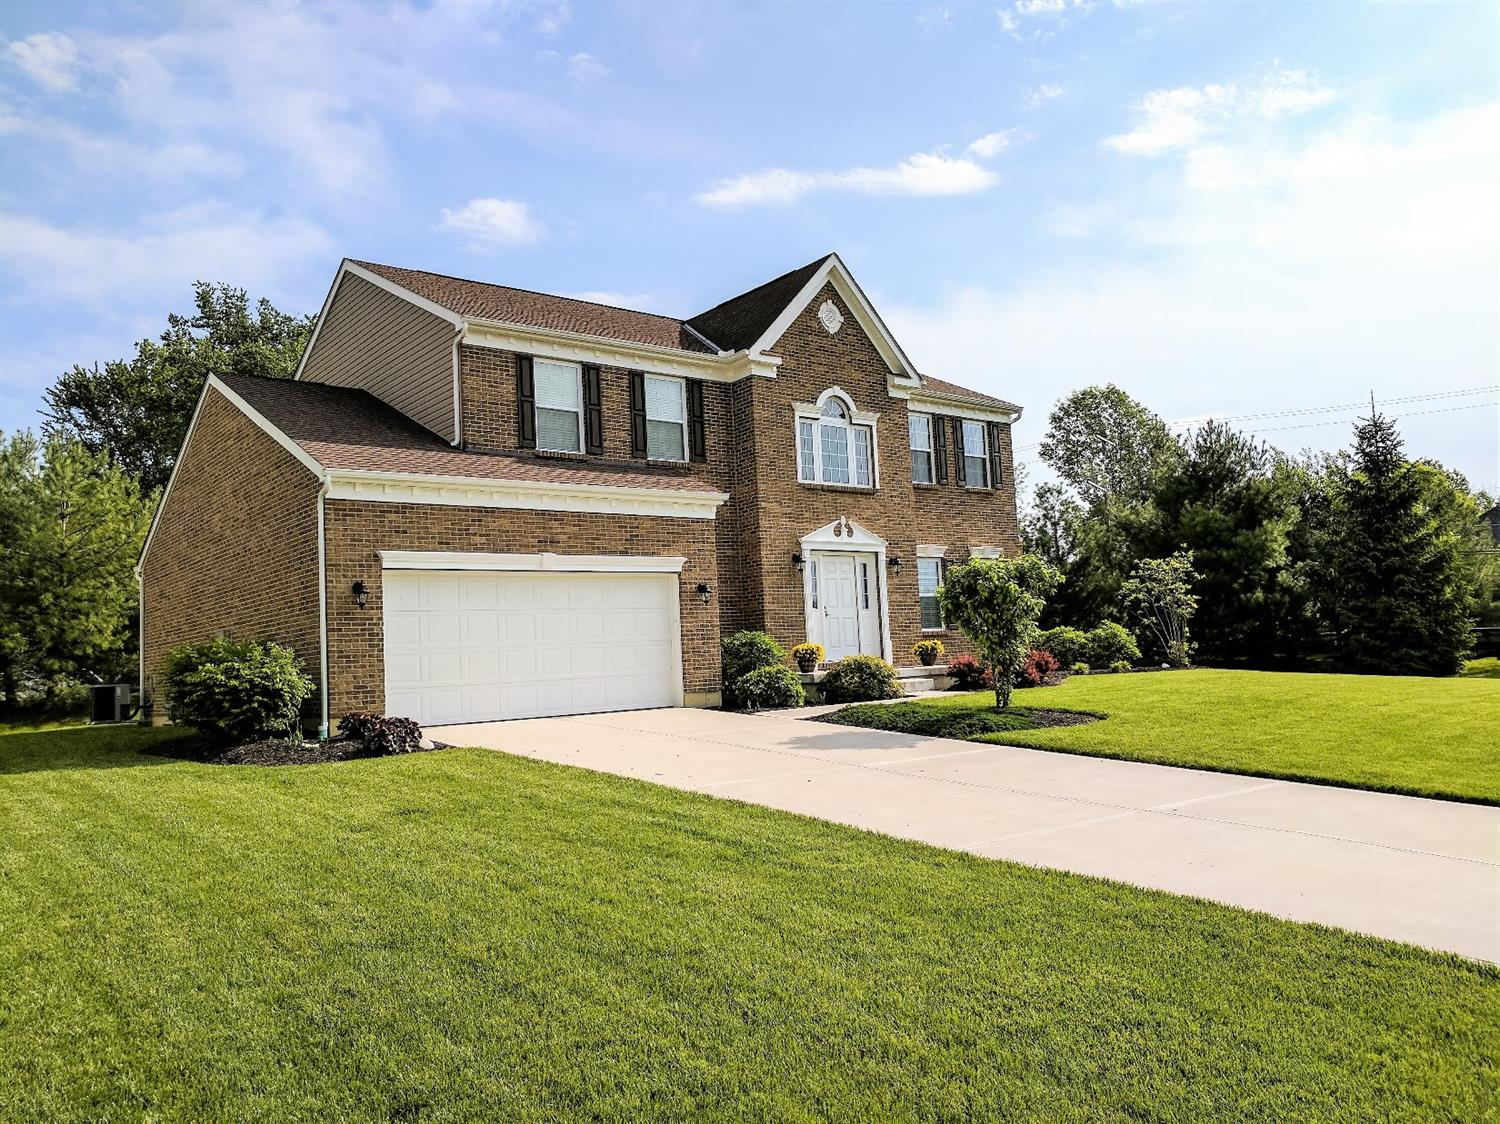 5653 Wittmer Meadows Drive, Miami Twp, OH 45150